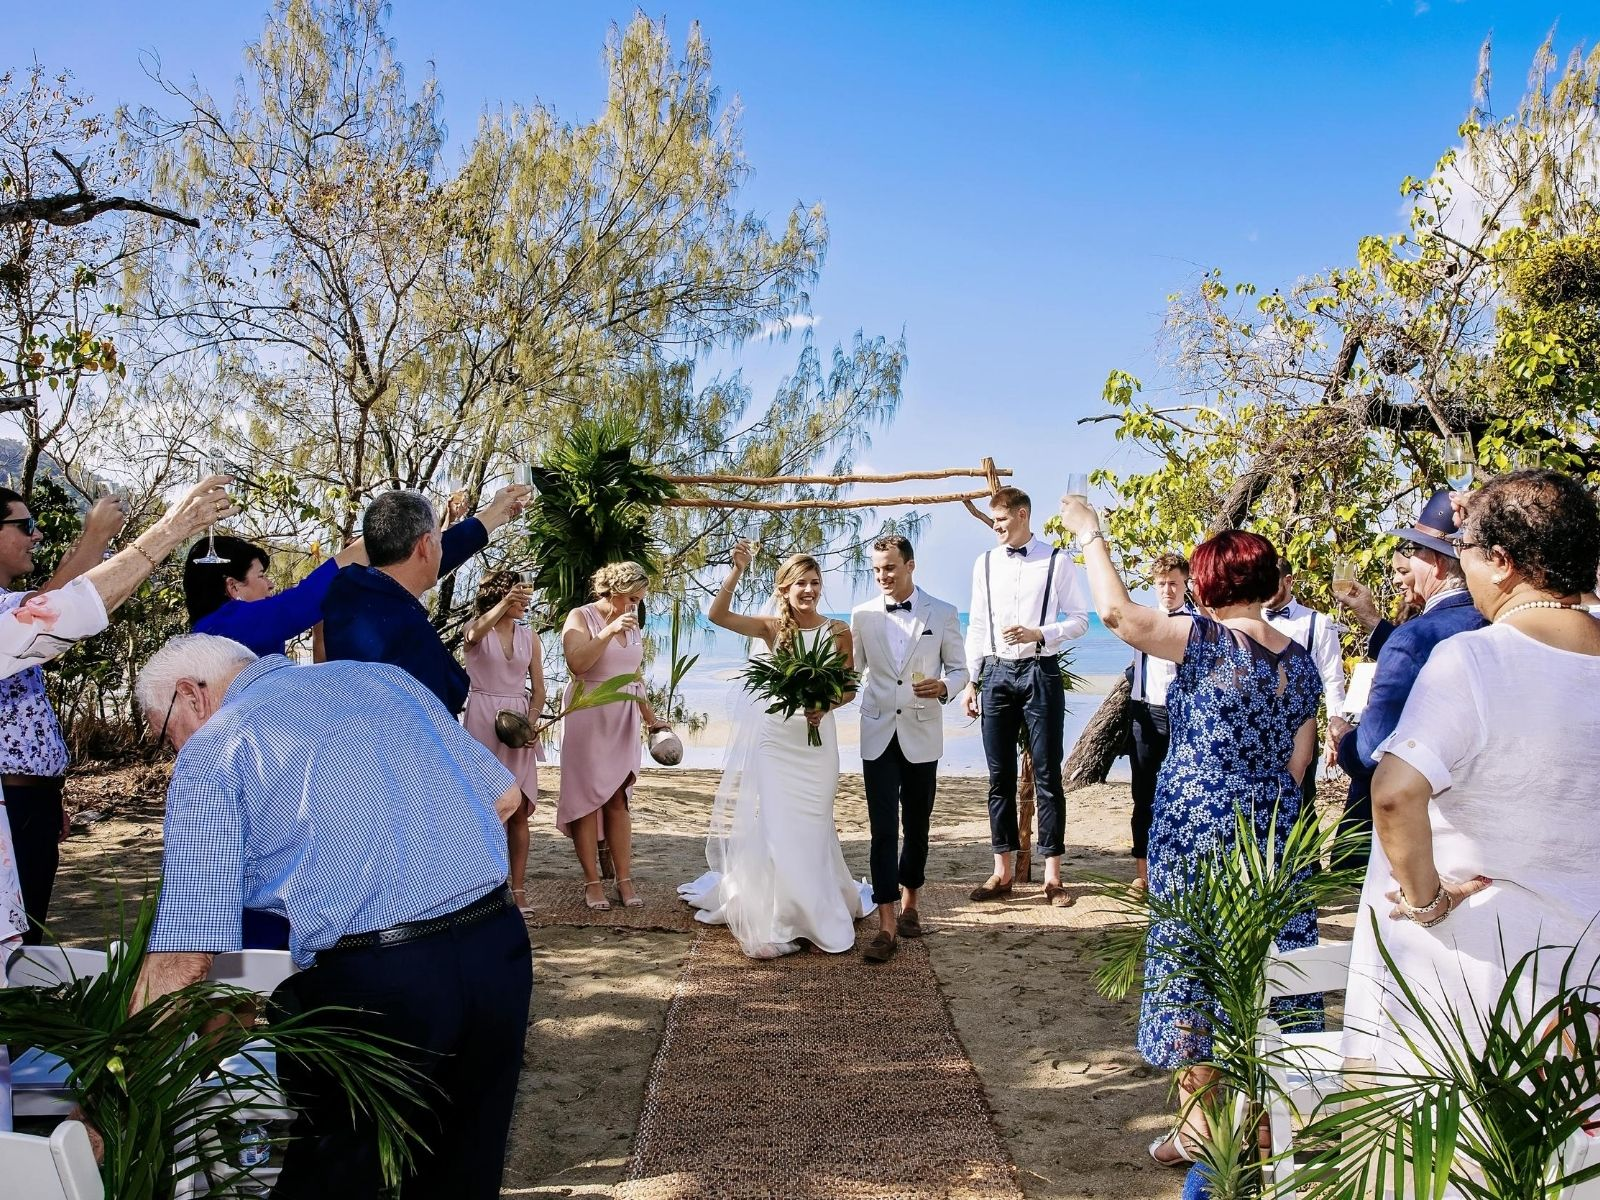 Bride and Groom celebrating at Paradise Cove Resort after wedding ceremony